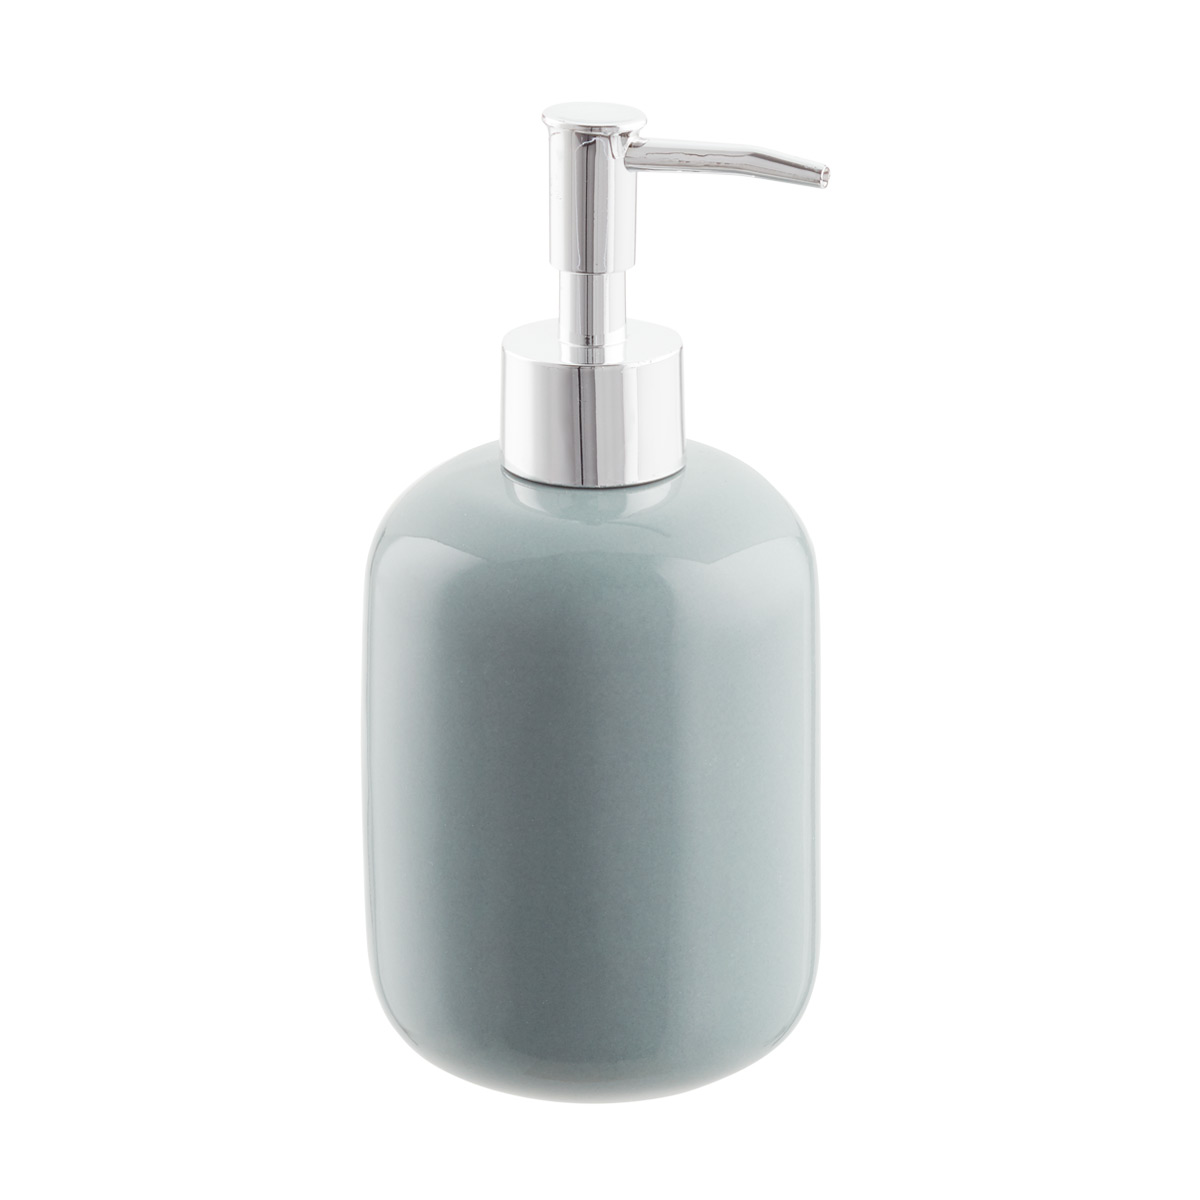 Serene Soap Pump Dispenser